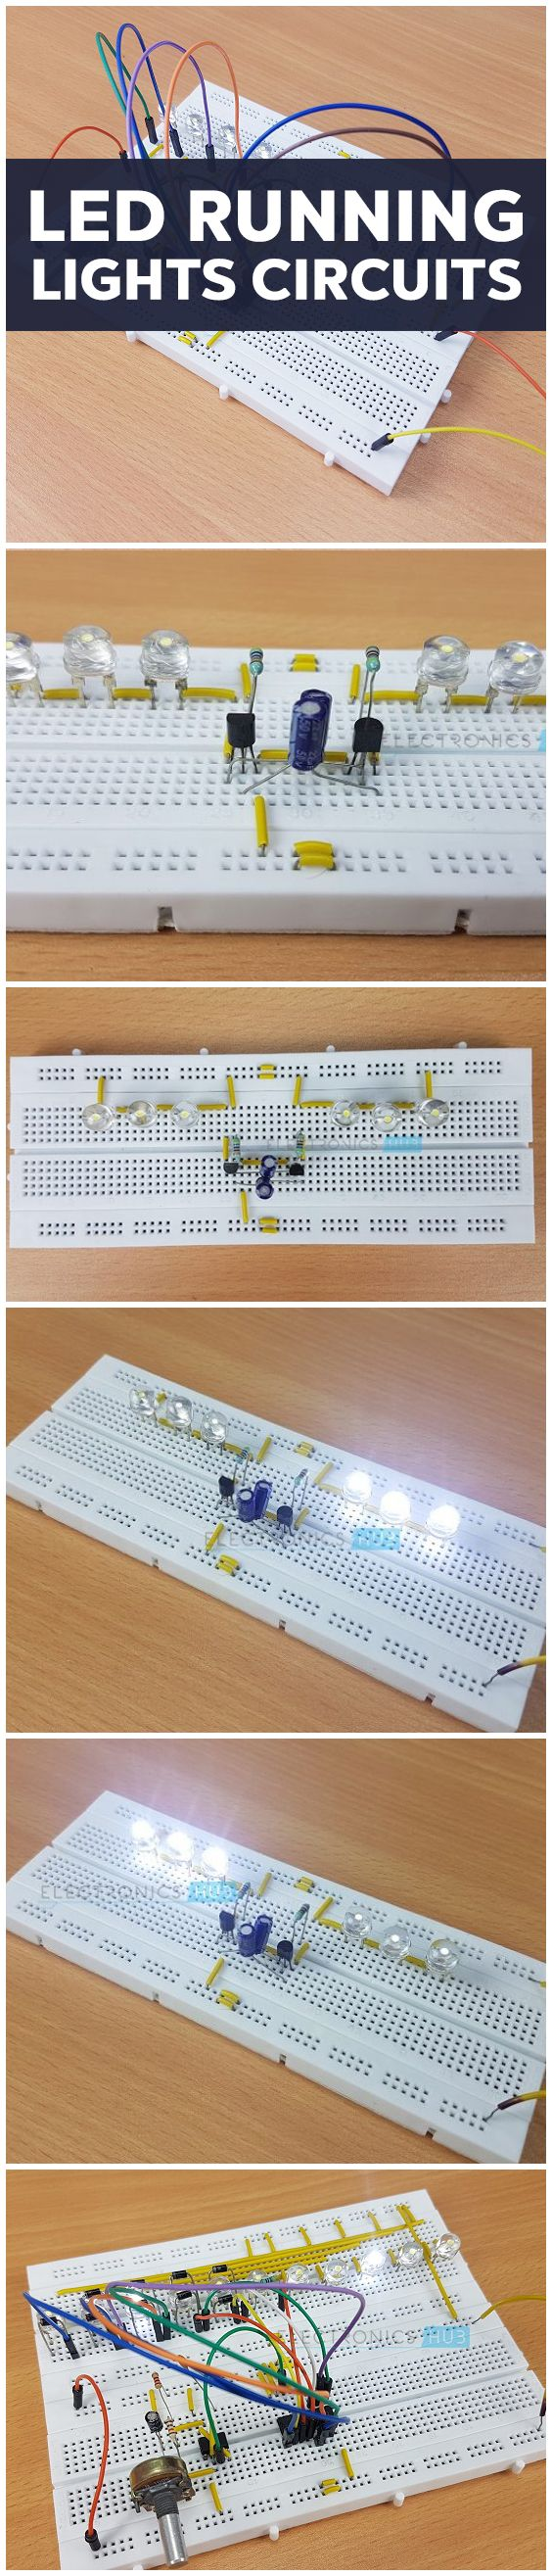 Led Knight Rider Circuit Circuits Arduino And Projects Light Keyboard Wiring Diagram